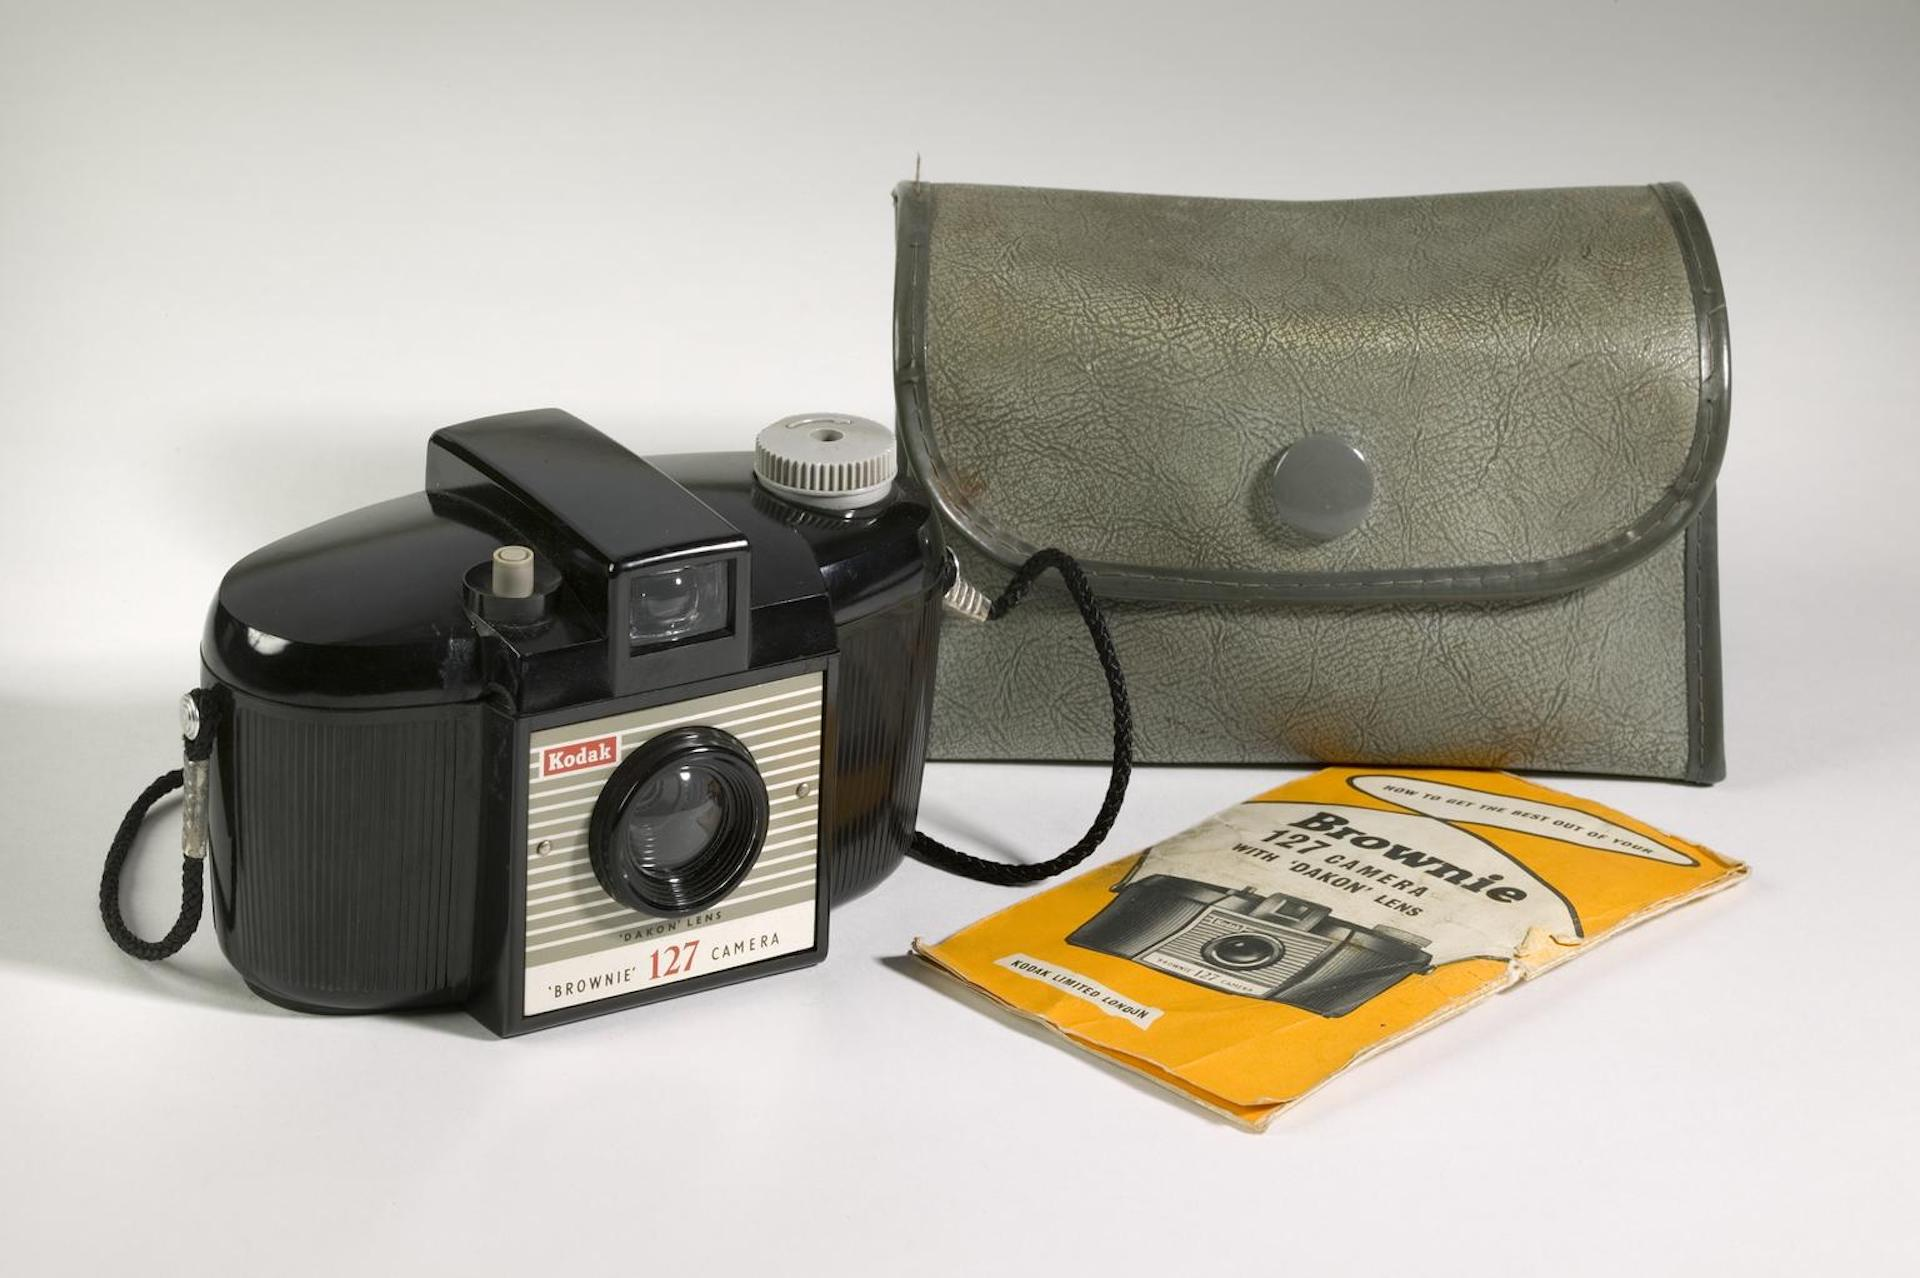 Kodak Brownie 127 with case, c. 1965, from the Science Museum Group Collection. The iconic Brownie was a best selling product through the decades off Kodak's market domination. Photo © The Board of Trustees of the Science Museum